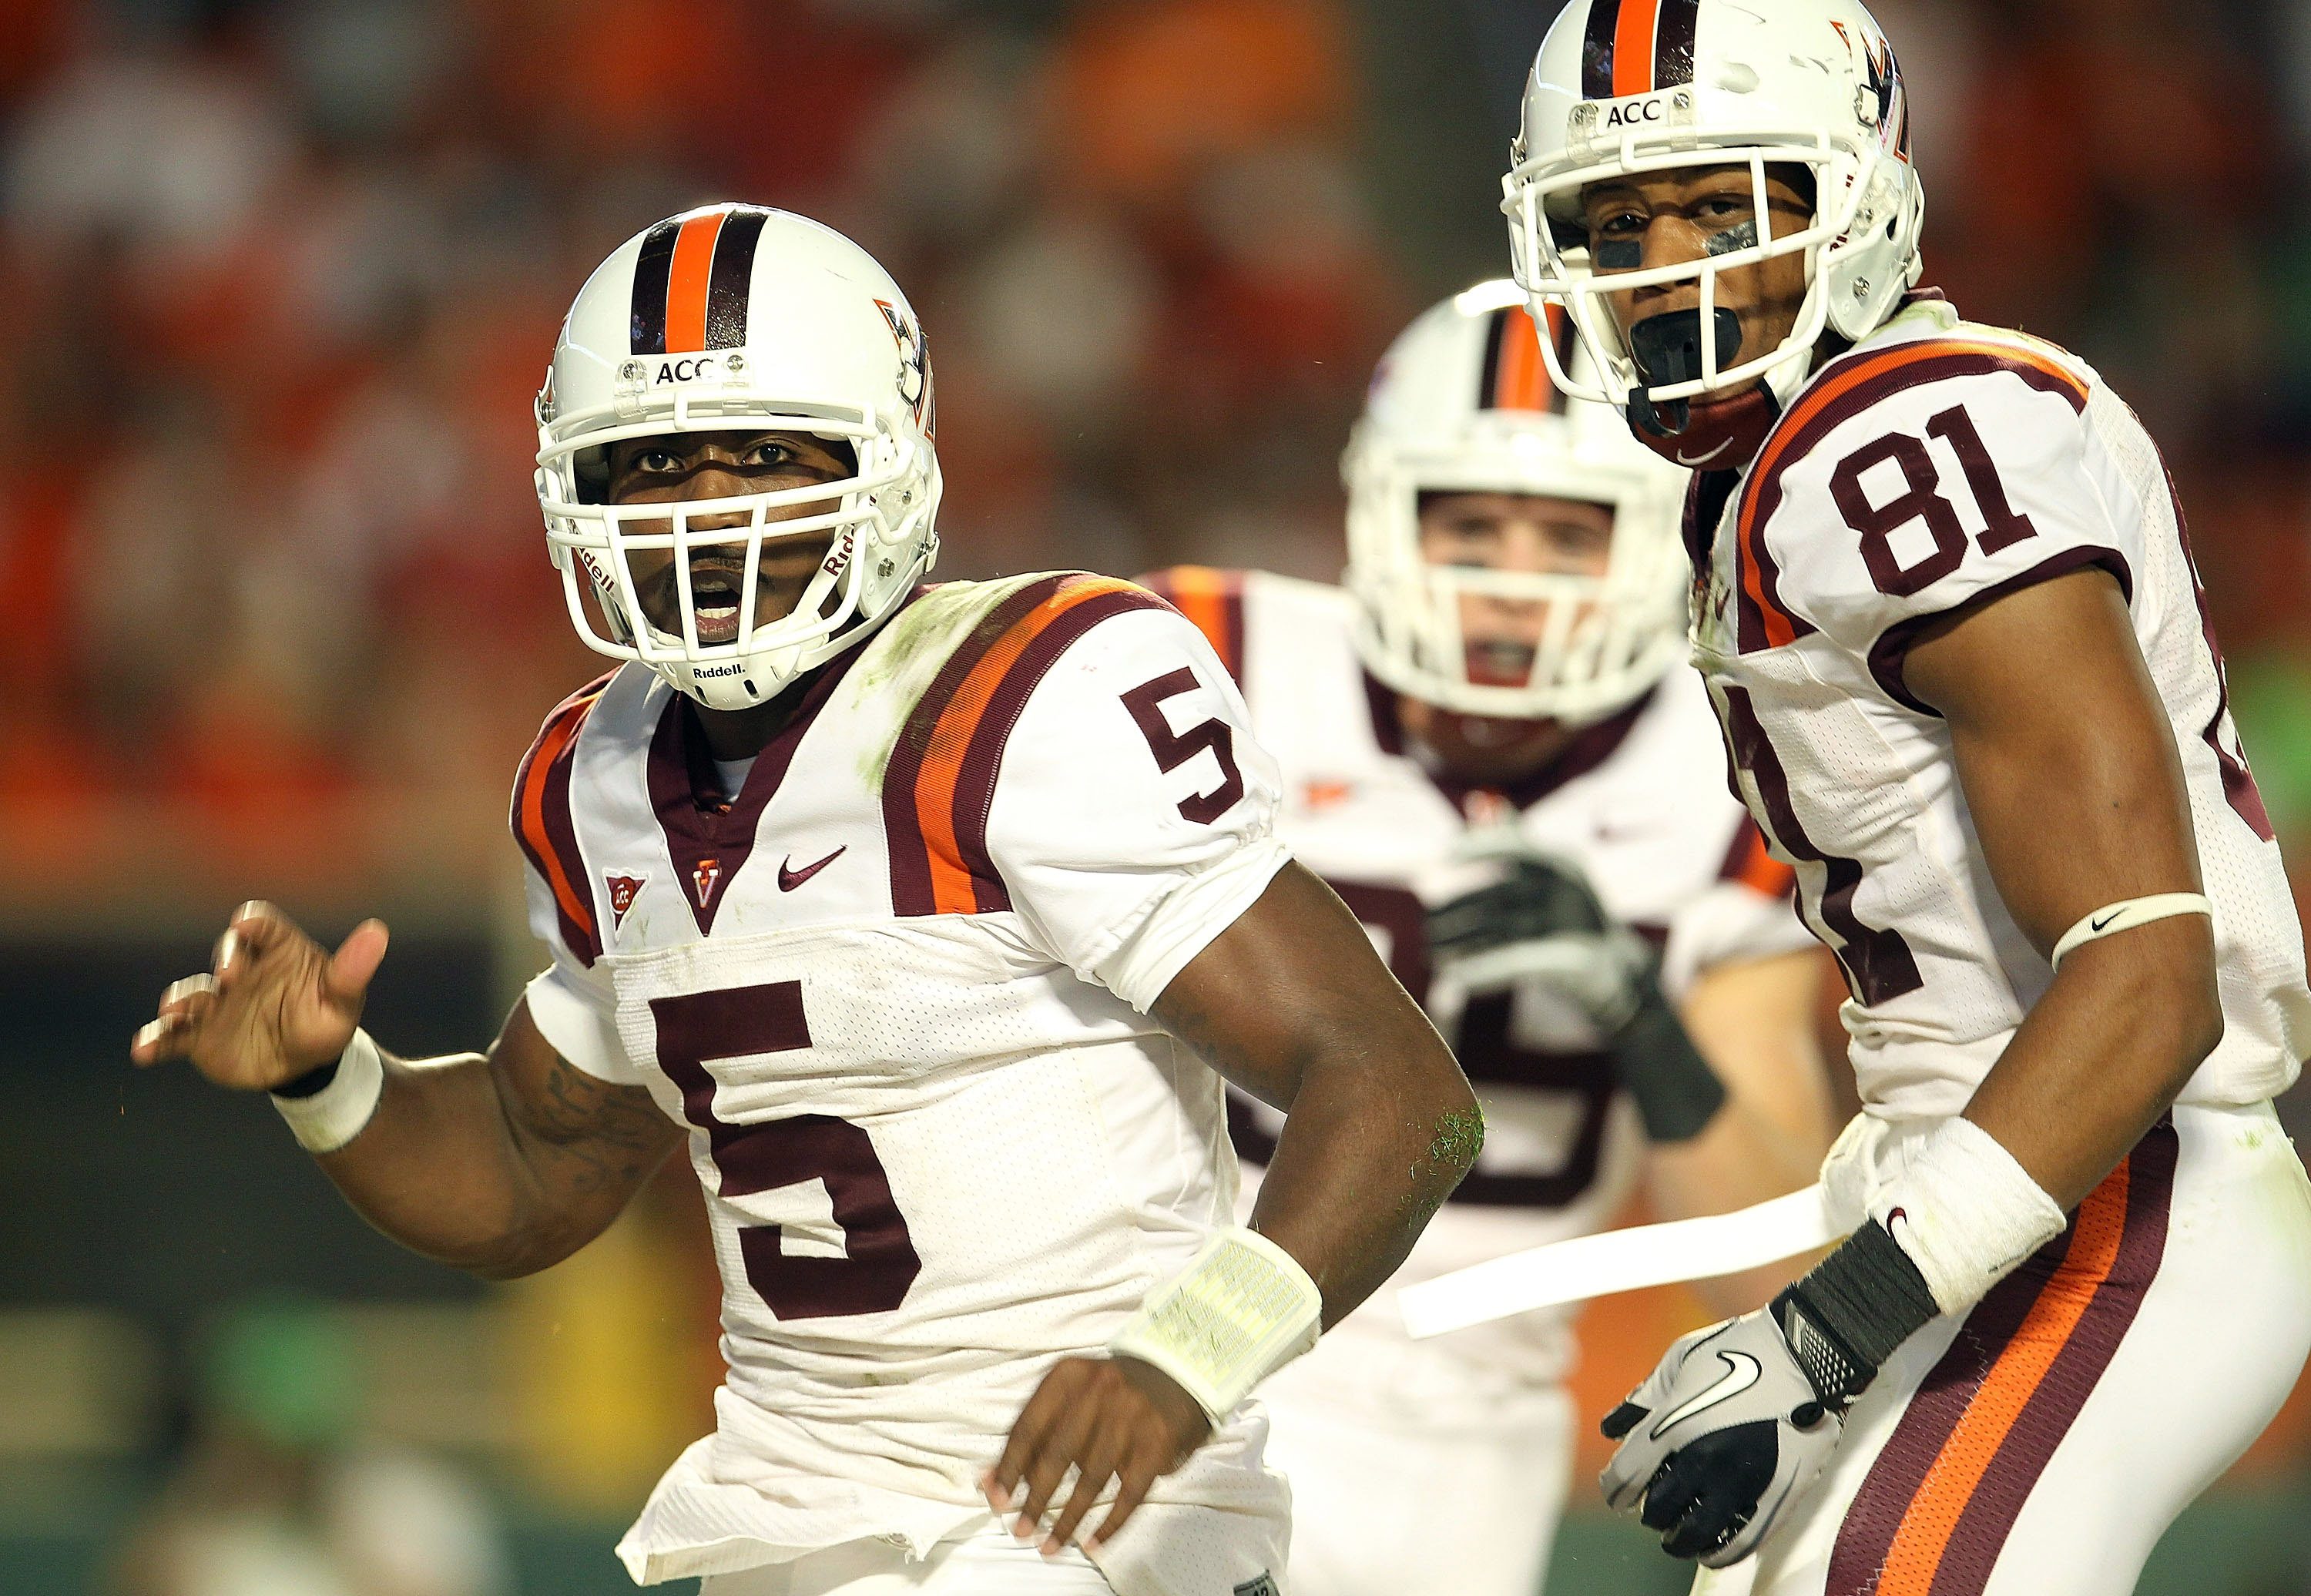 While at Virginia Tech, Tyrod Taylor (5) often connected with Jarrett Boykin (81). This photo is from the Hokies' game at Miami on Nov. 20, 2010.  (Getty Images)